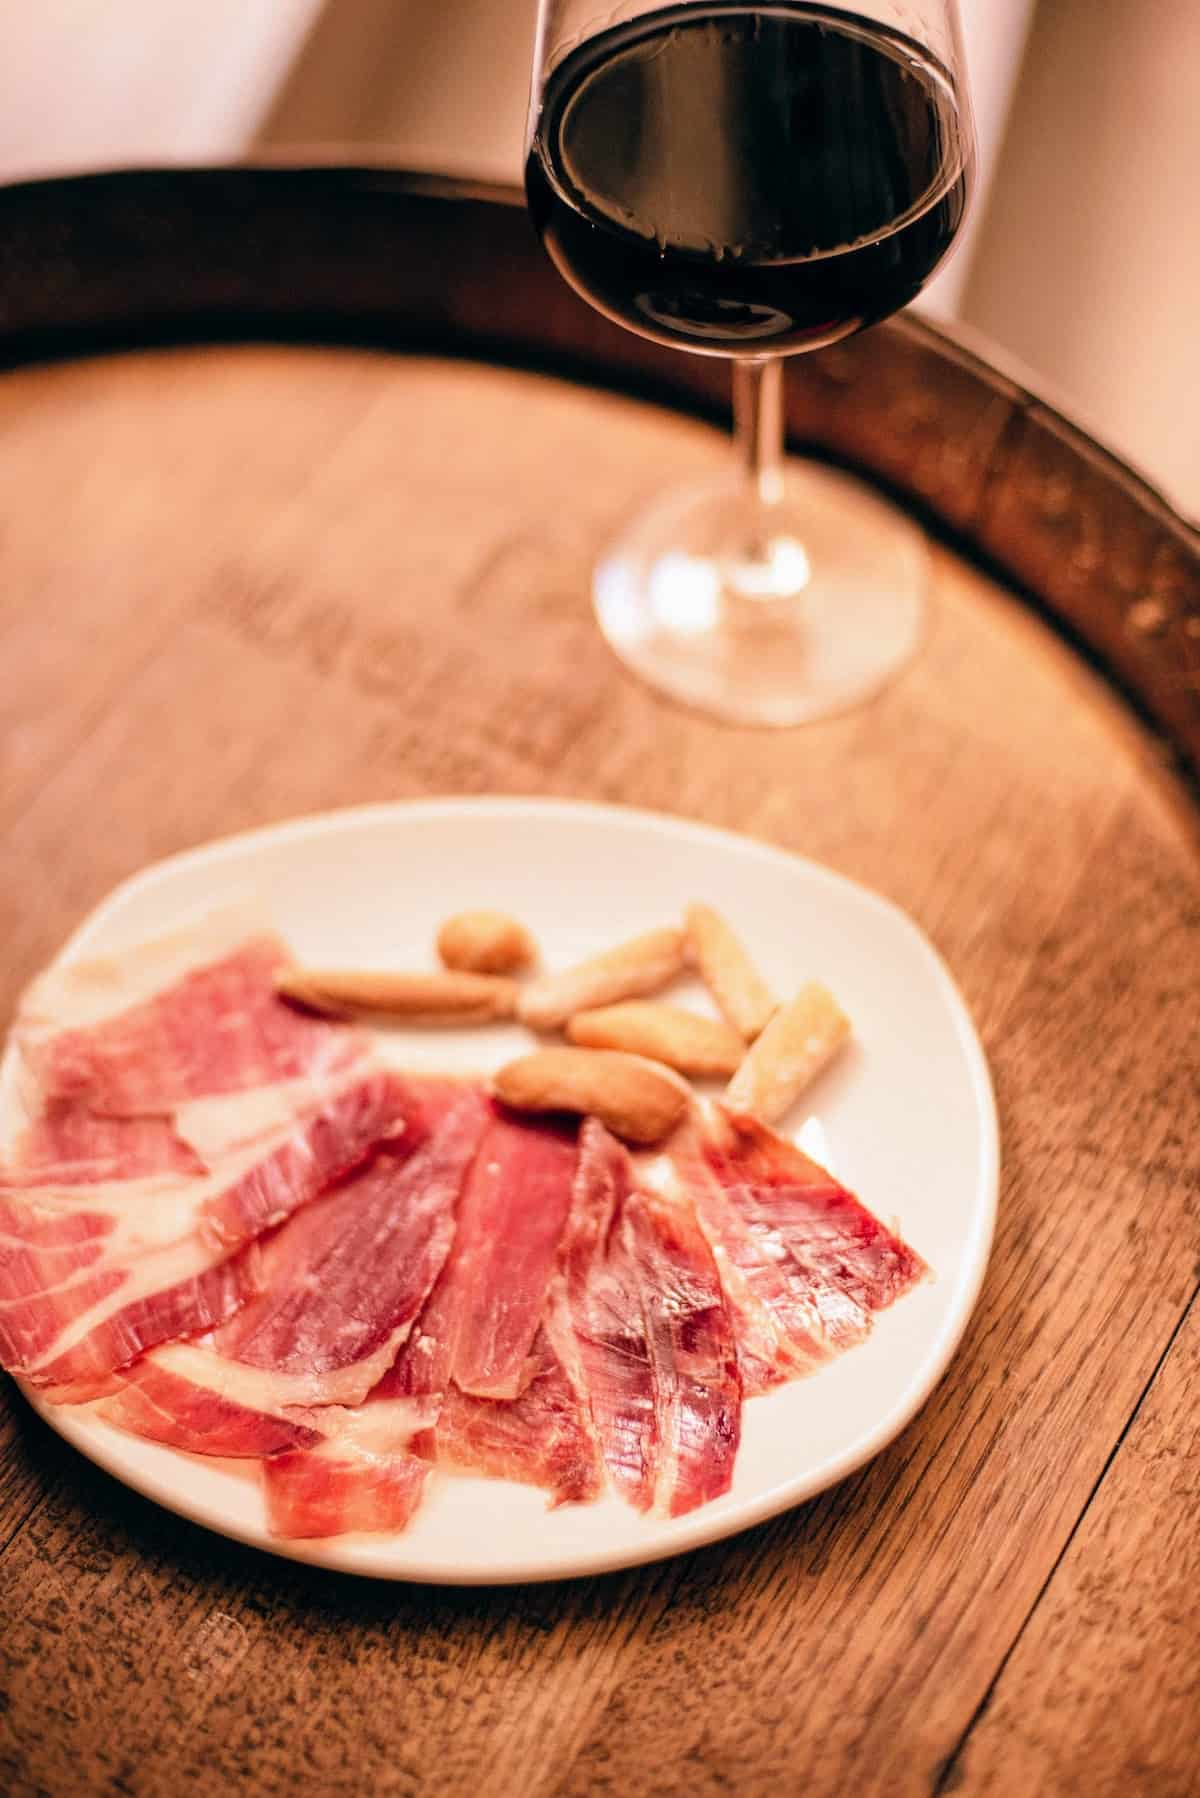 Plate of cured ham and small crunchy breadsticks next to a glass of red wine on top of a wooden barrel